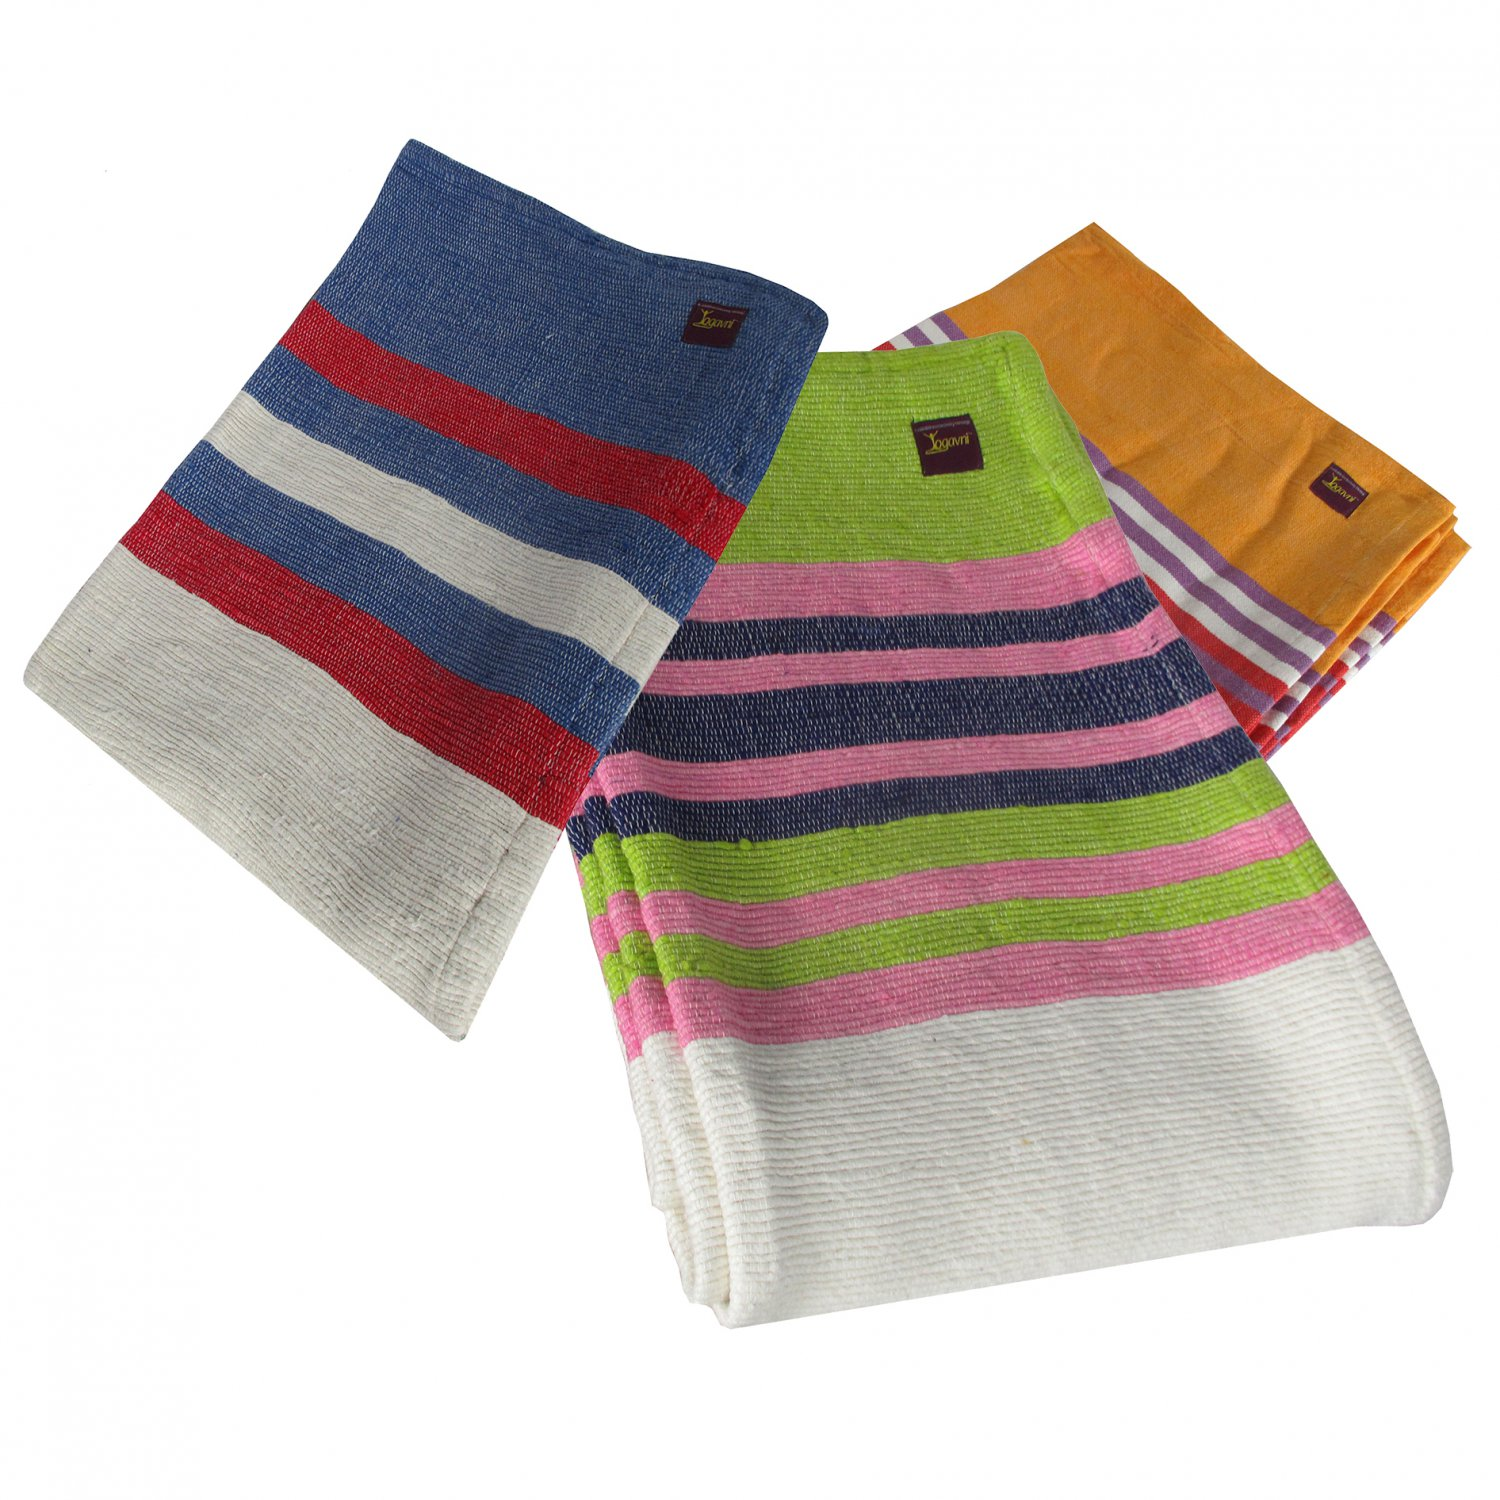 Light Weight Striped Soft and Pure Cotton Yoga Blanket - Available as Assorted Colors Only